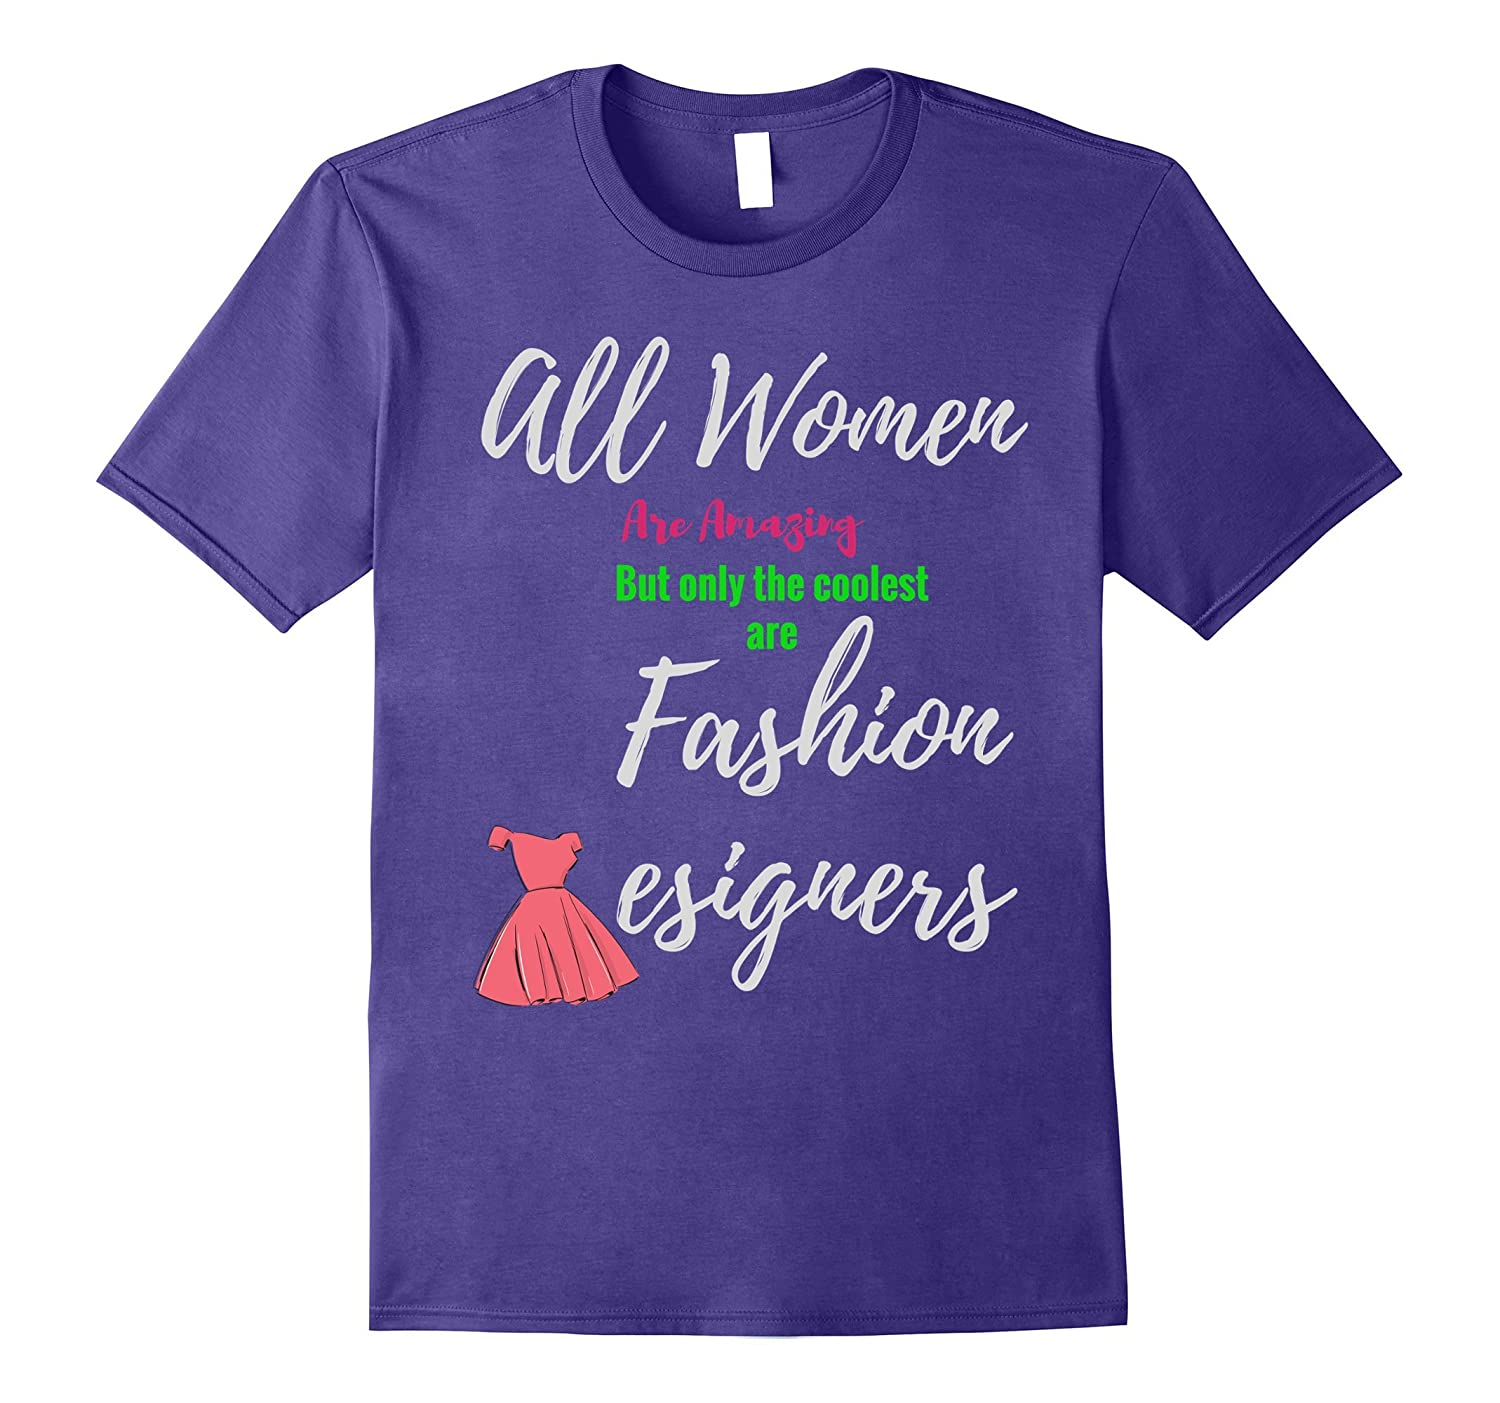 All women are amazing but only coolest are Fashion Designers-FL